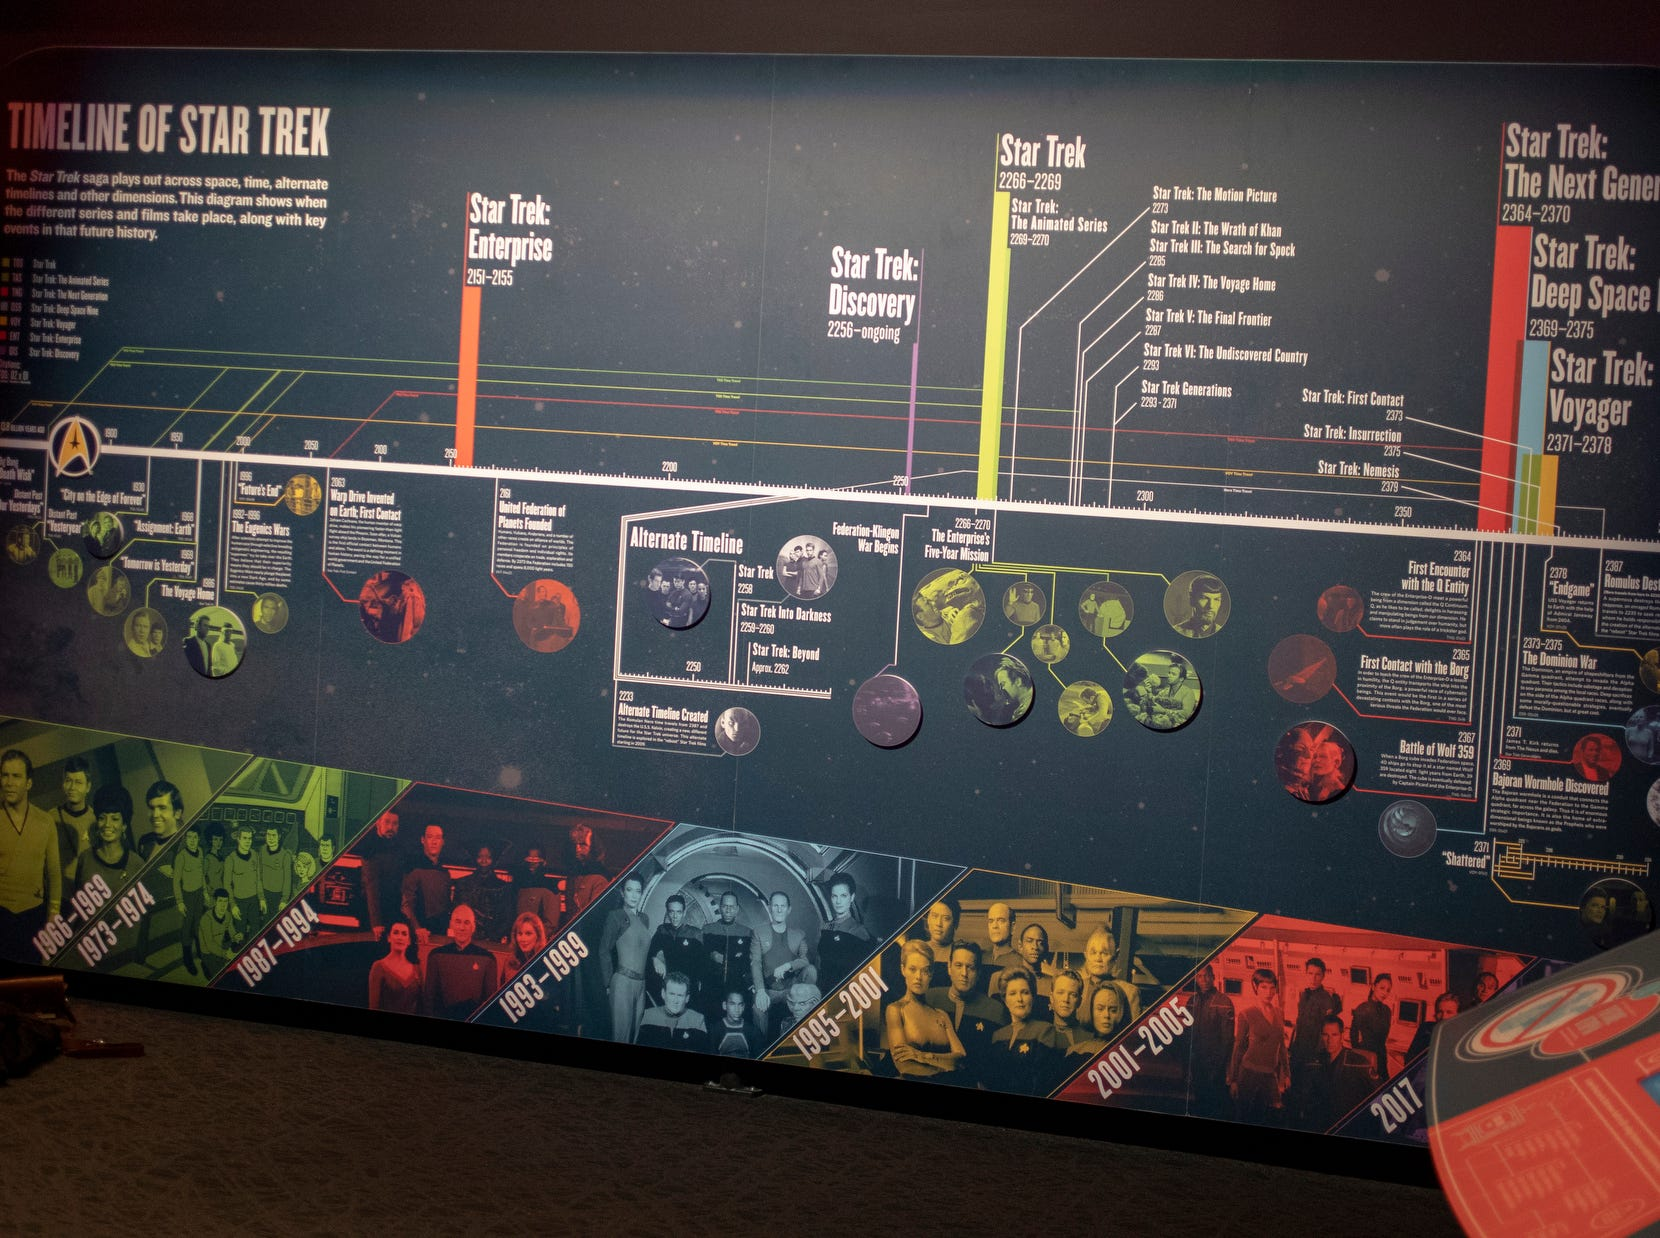 """A timeline of the Star Trek universe is seen at The Children's Museum of Indianapolis, Wednesday, Jan. 23, 2019. The """"Star Trek: Exploring New Worlds"""" exhibit is made up of set pieces, ship models and outfits used during various Star Trek shows and movies and is on display at the museum from Feb. 2 through April 7, 2019."""